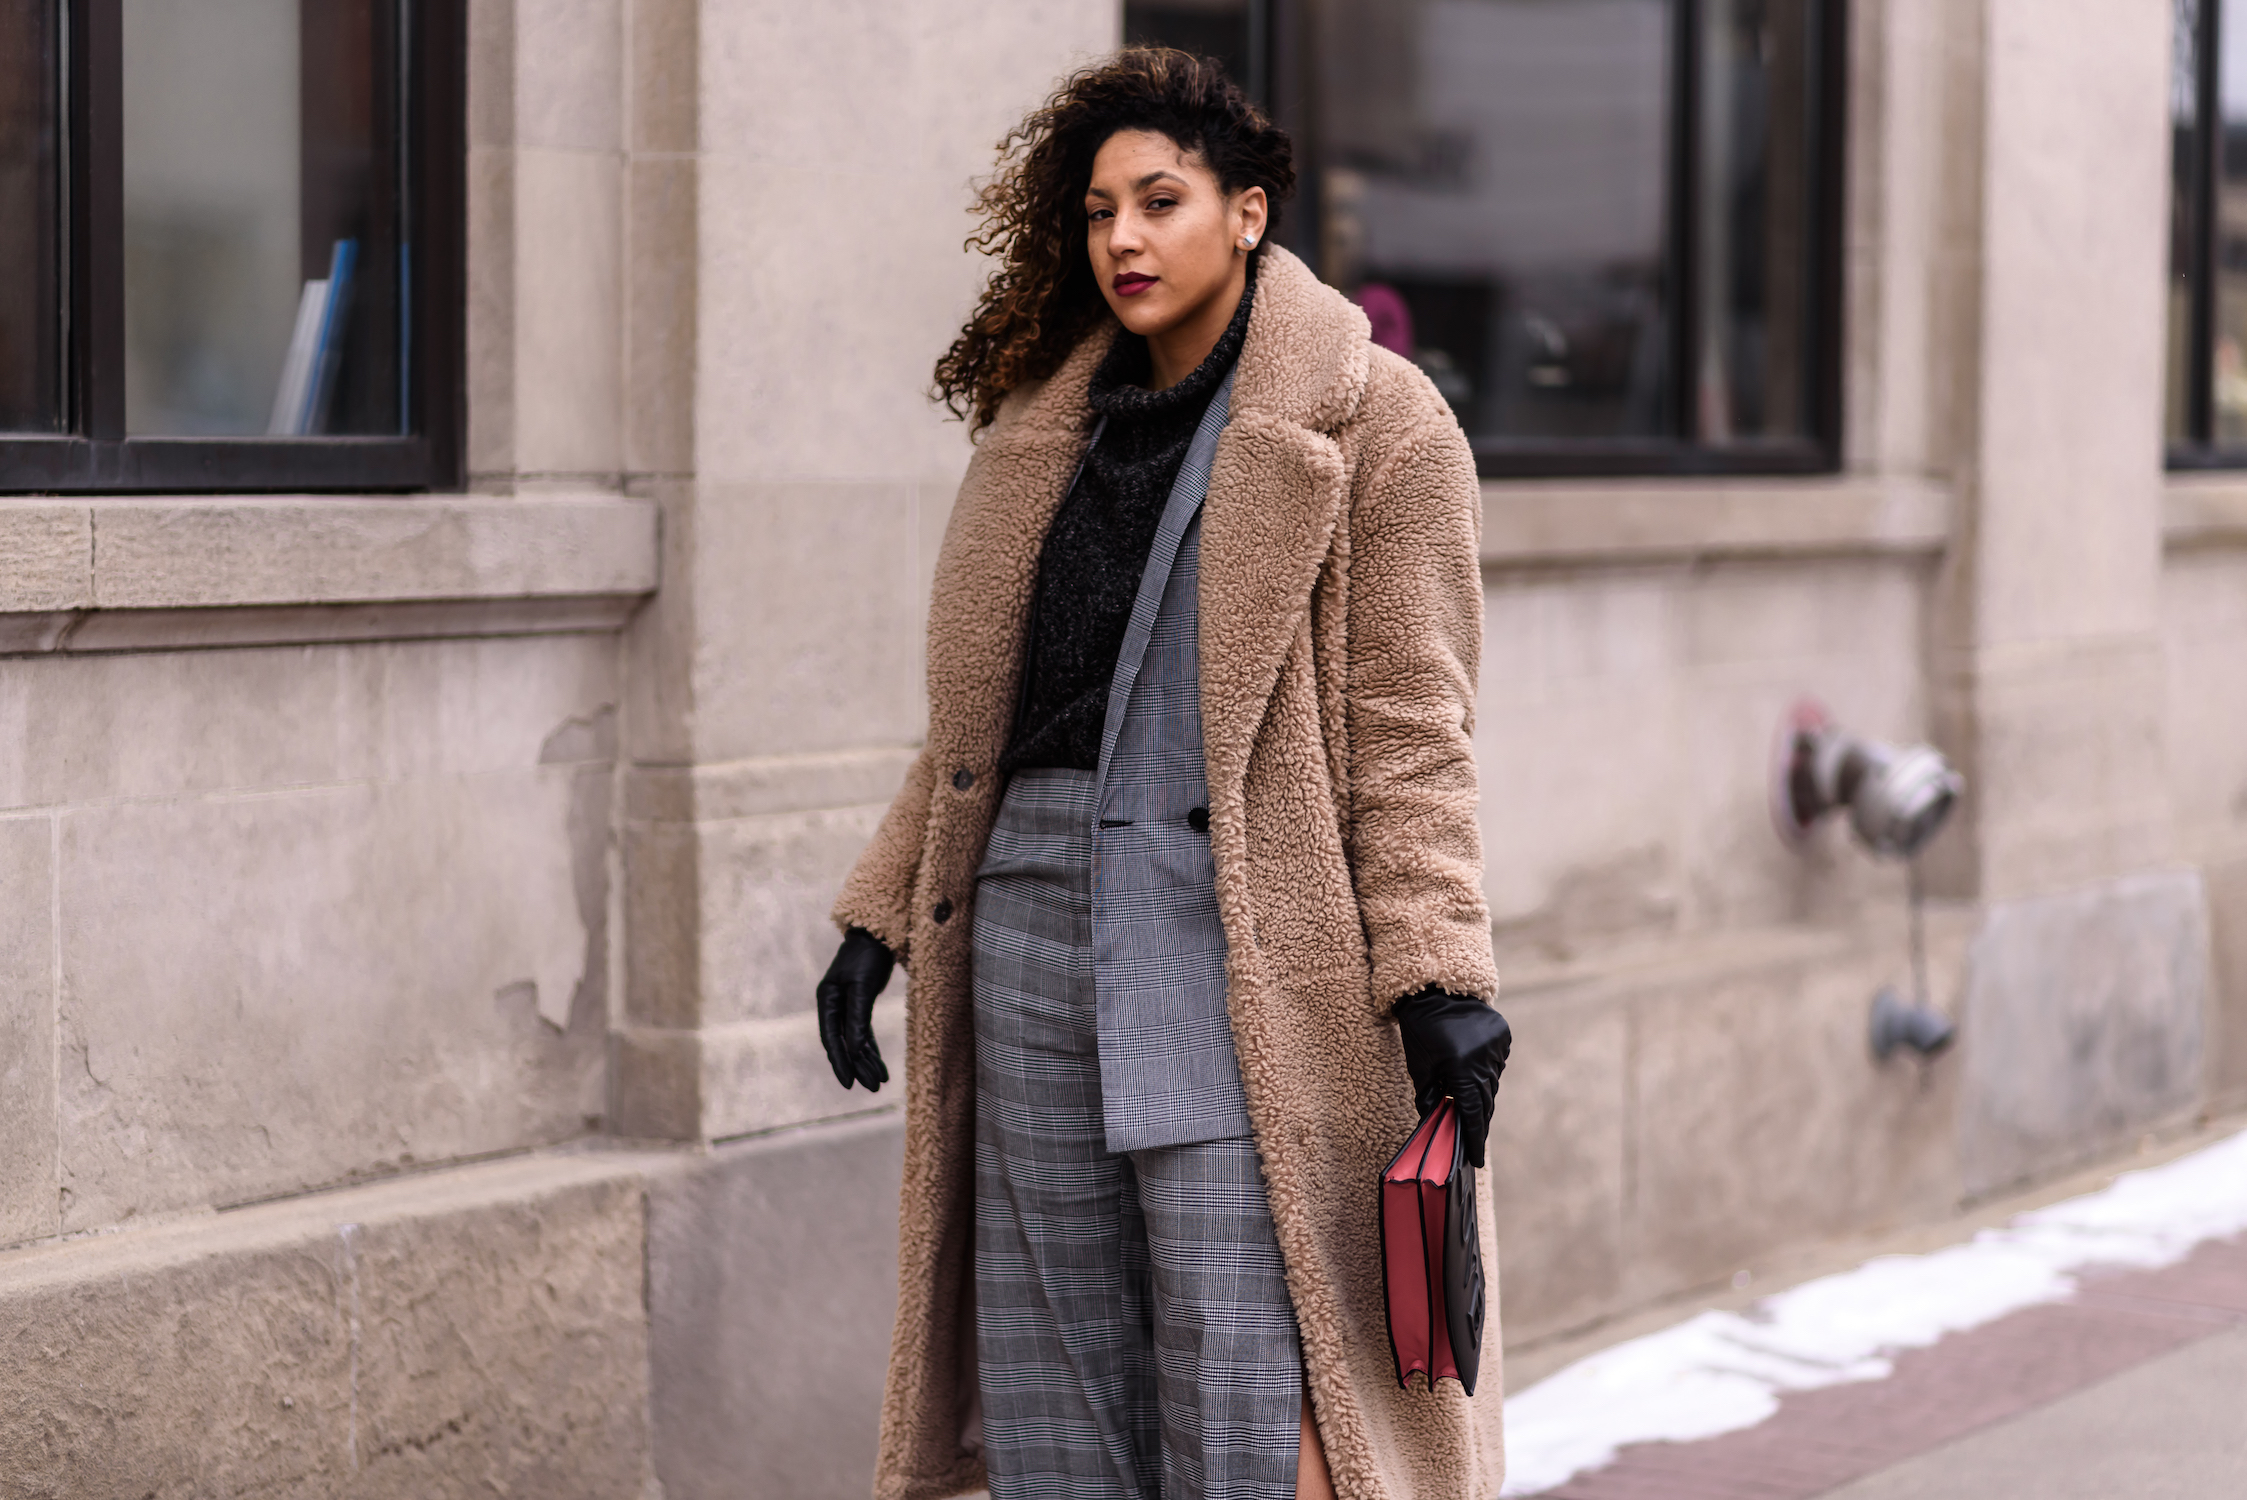 What It's Like Being a Stylish Black Female Engineer|Detroit Fashion Blogger - plaid suit for women, chic spring work outfit, plaid blazer, plaid pants, work wear